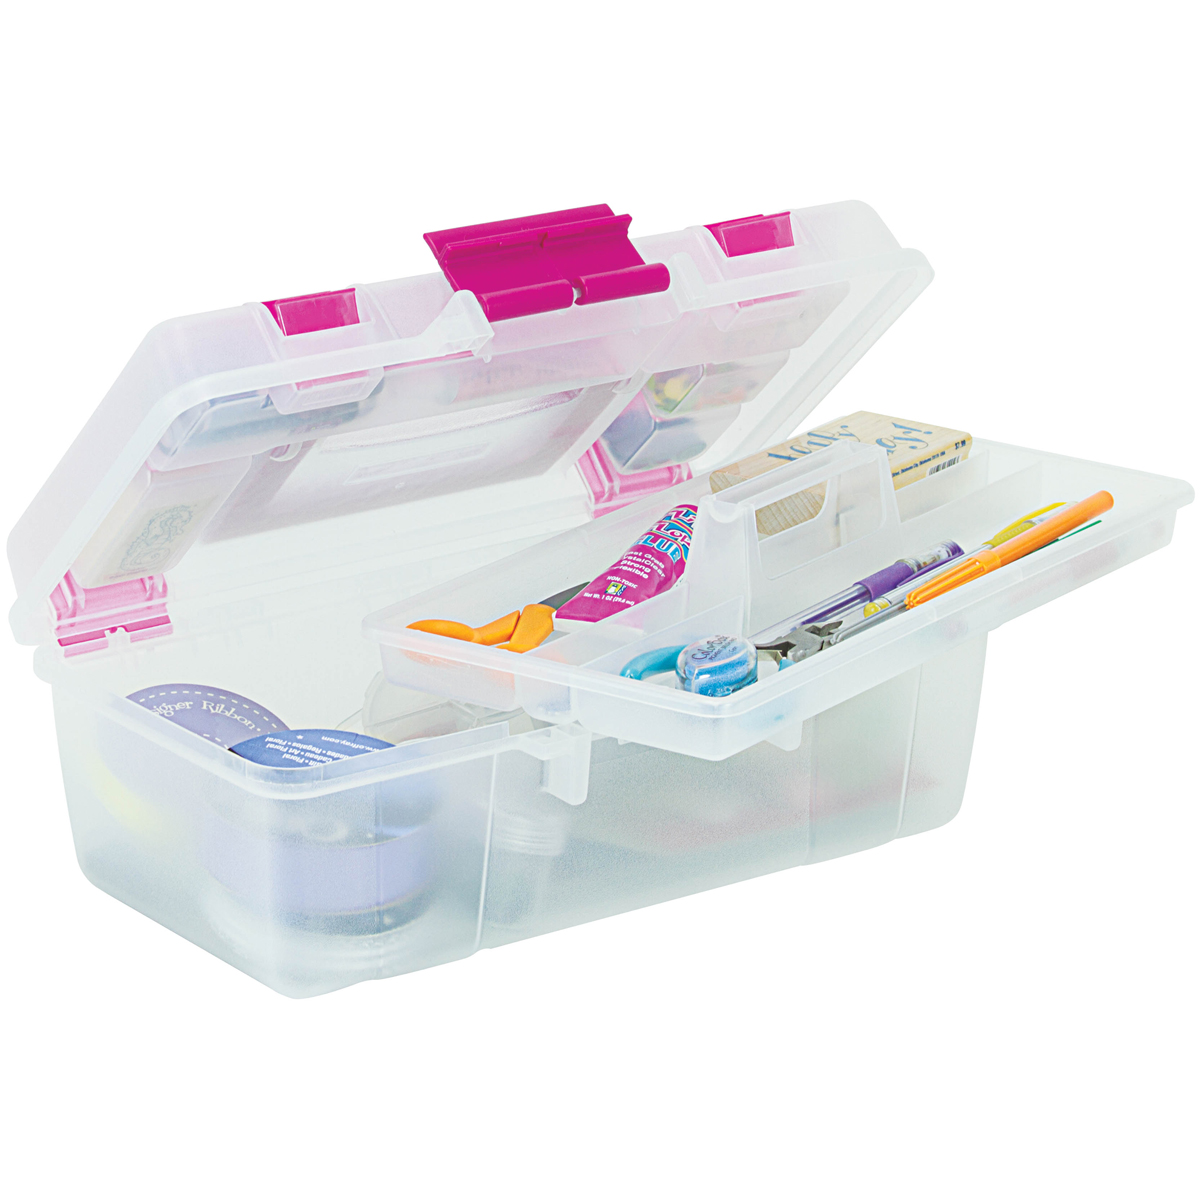 "Creative Options Tool Box Organizer, 13""x7.5""x5"", Clear"